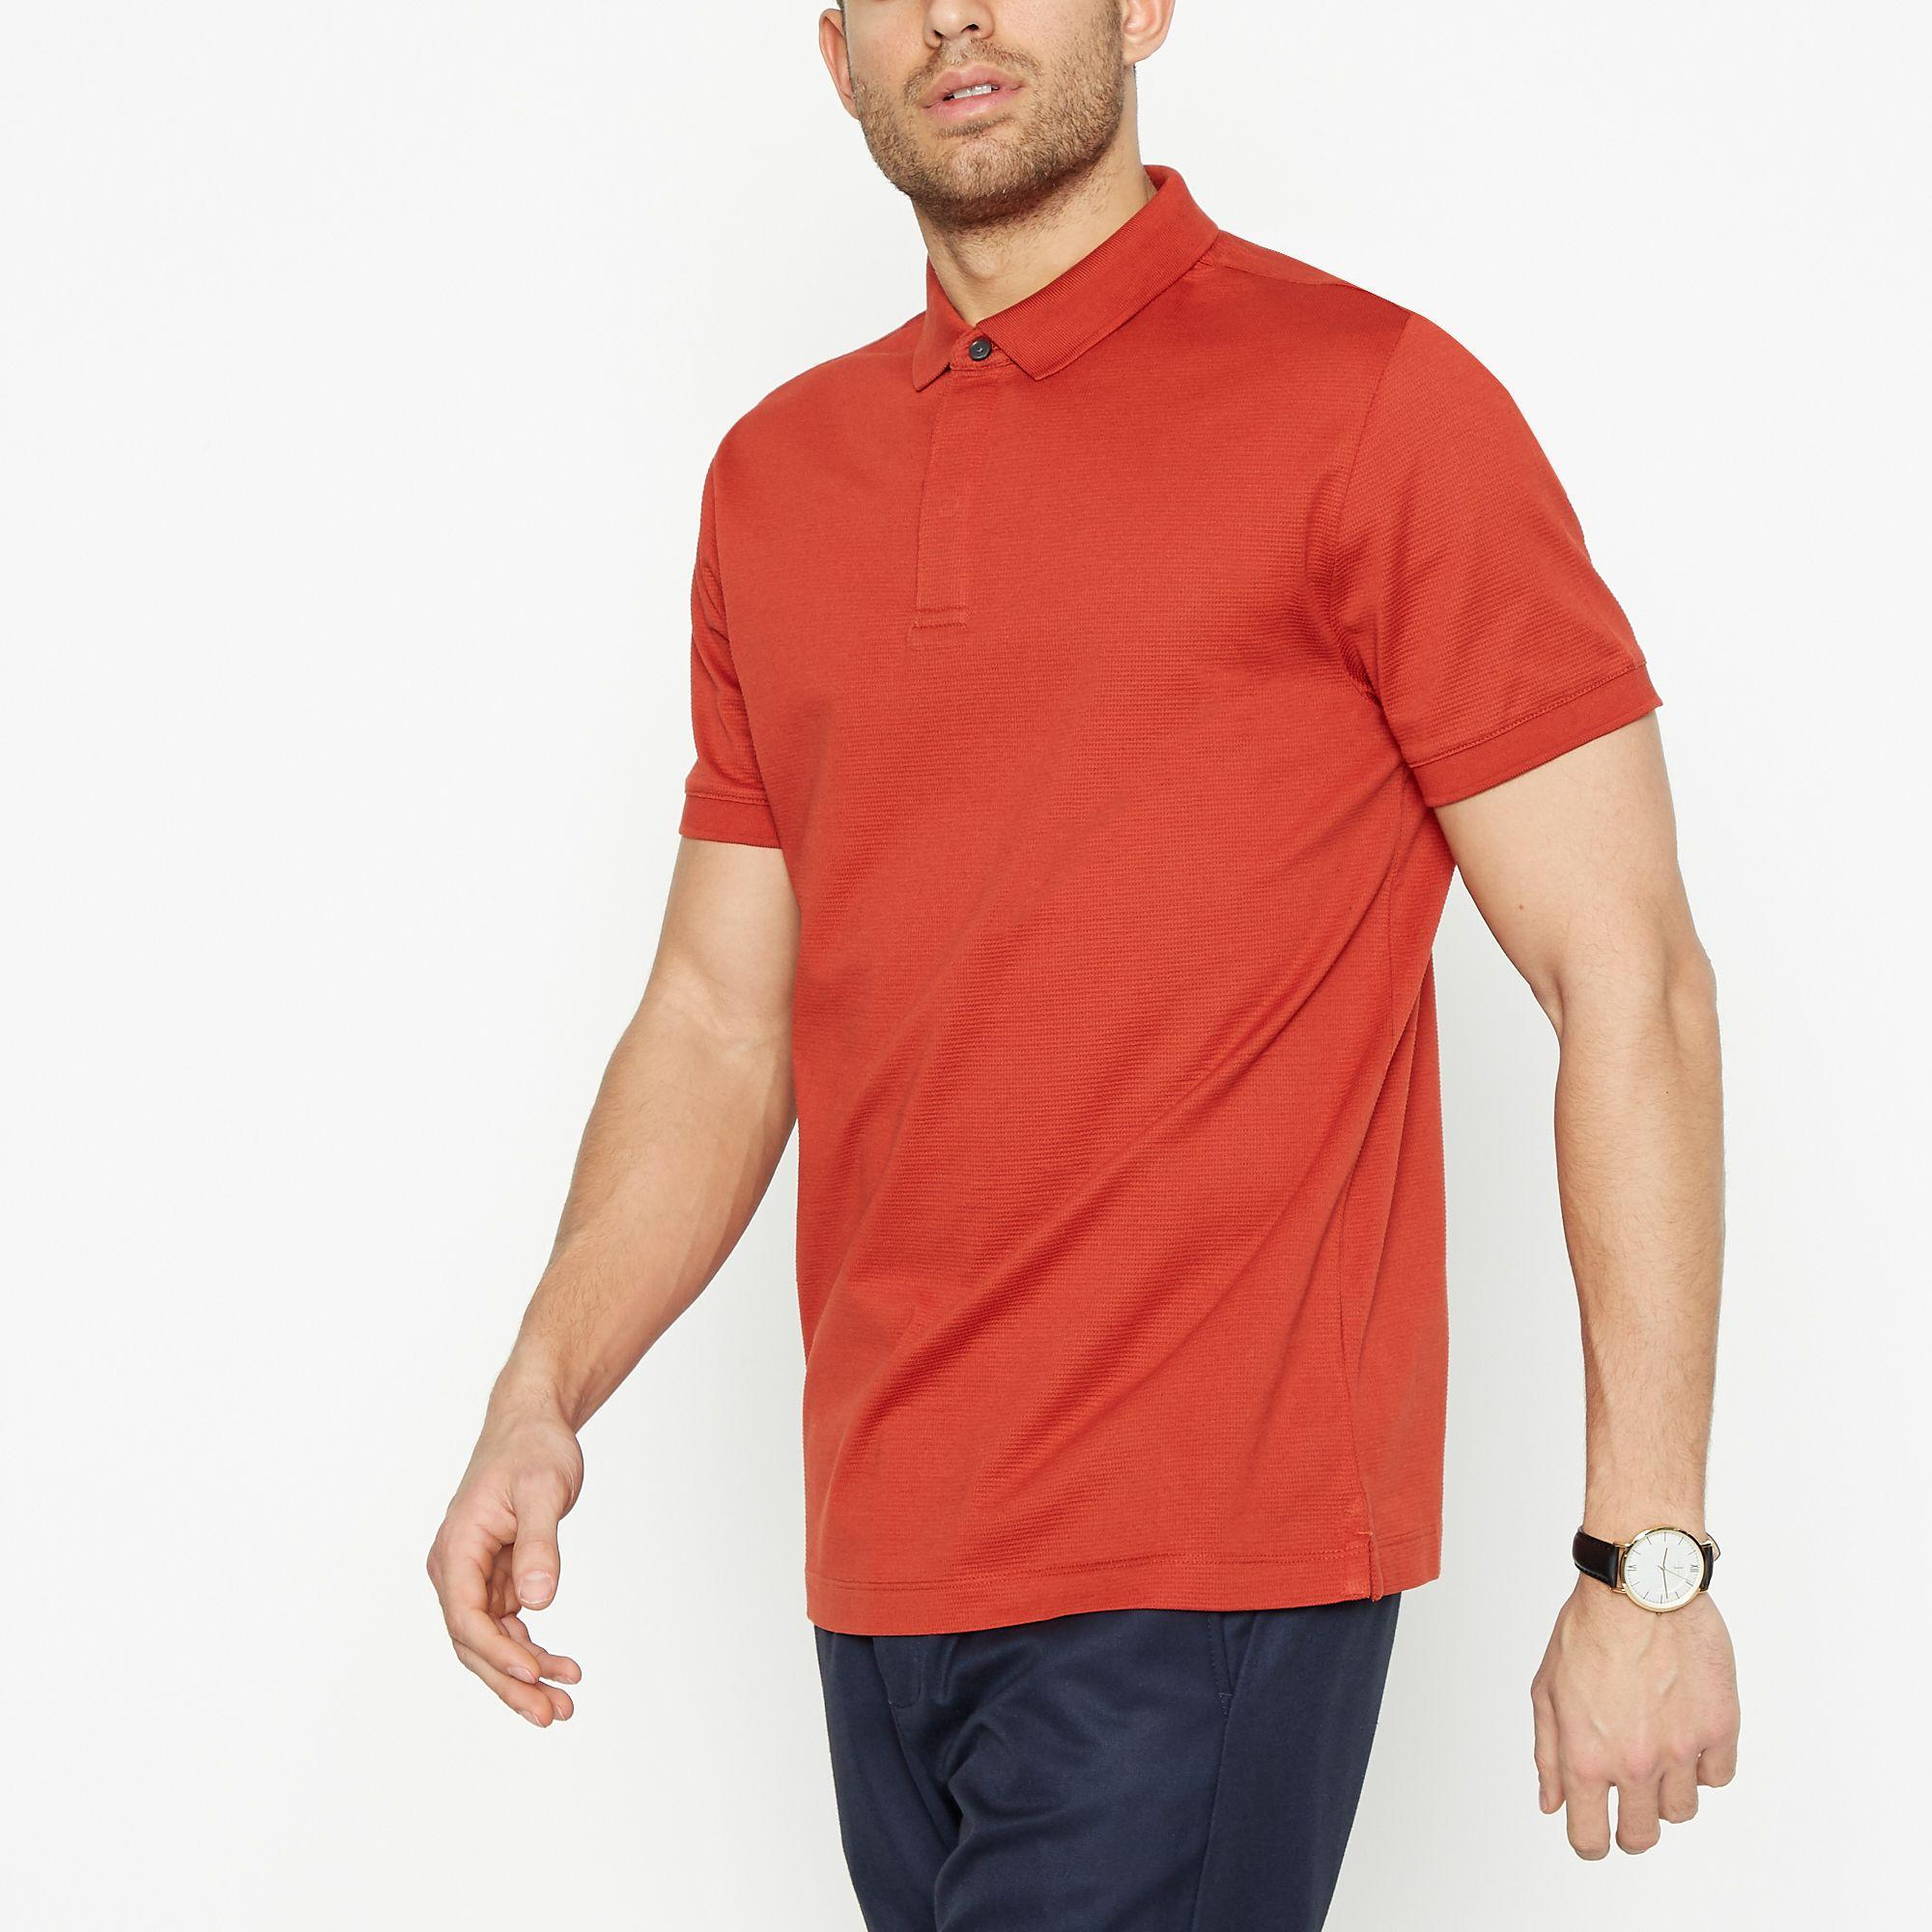 34d0253d J By Jasper Conran Big And Tall Red Textured Polo Shirt in Red for ...